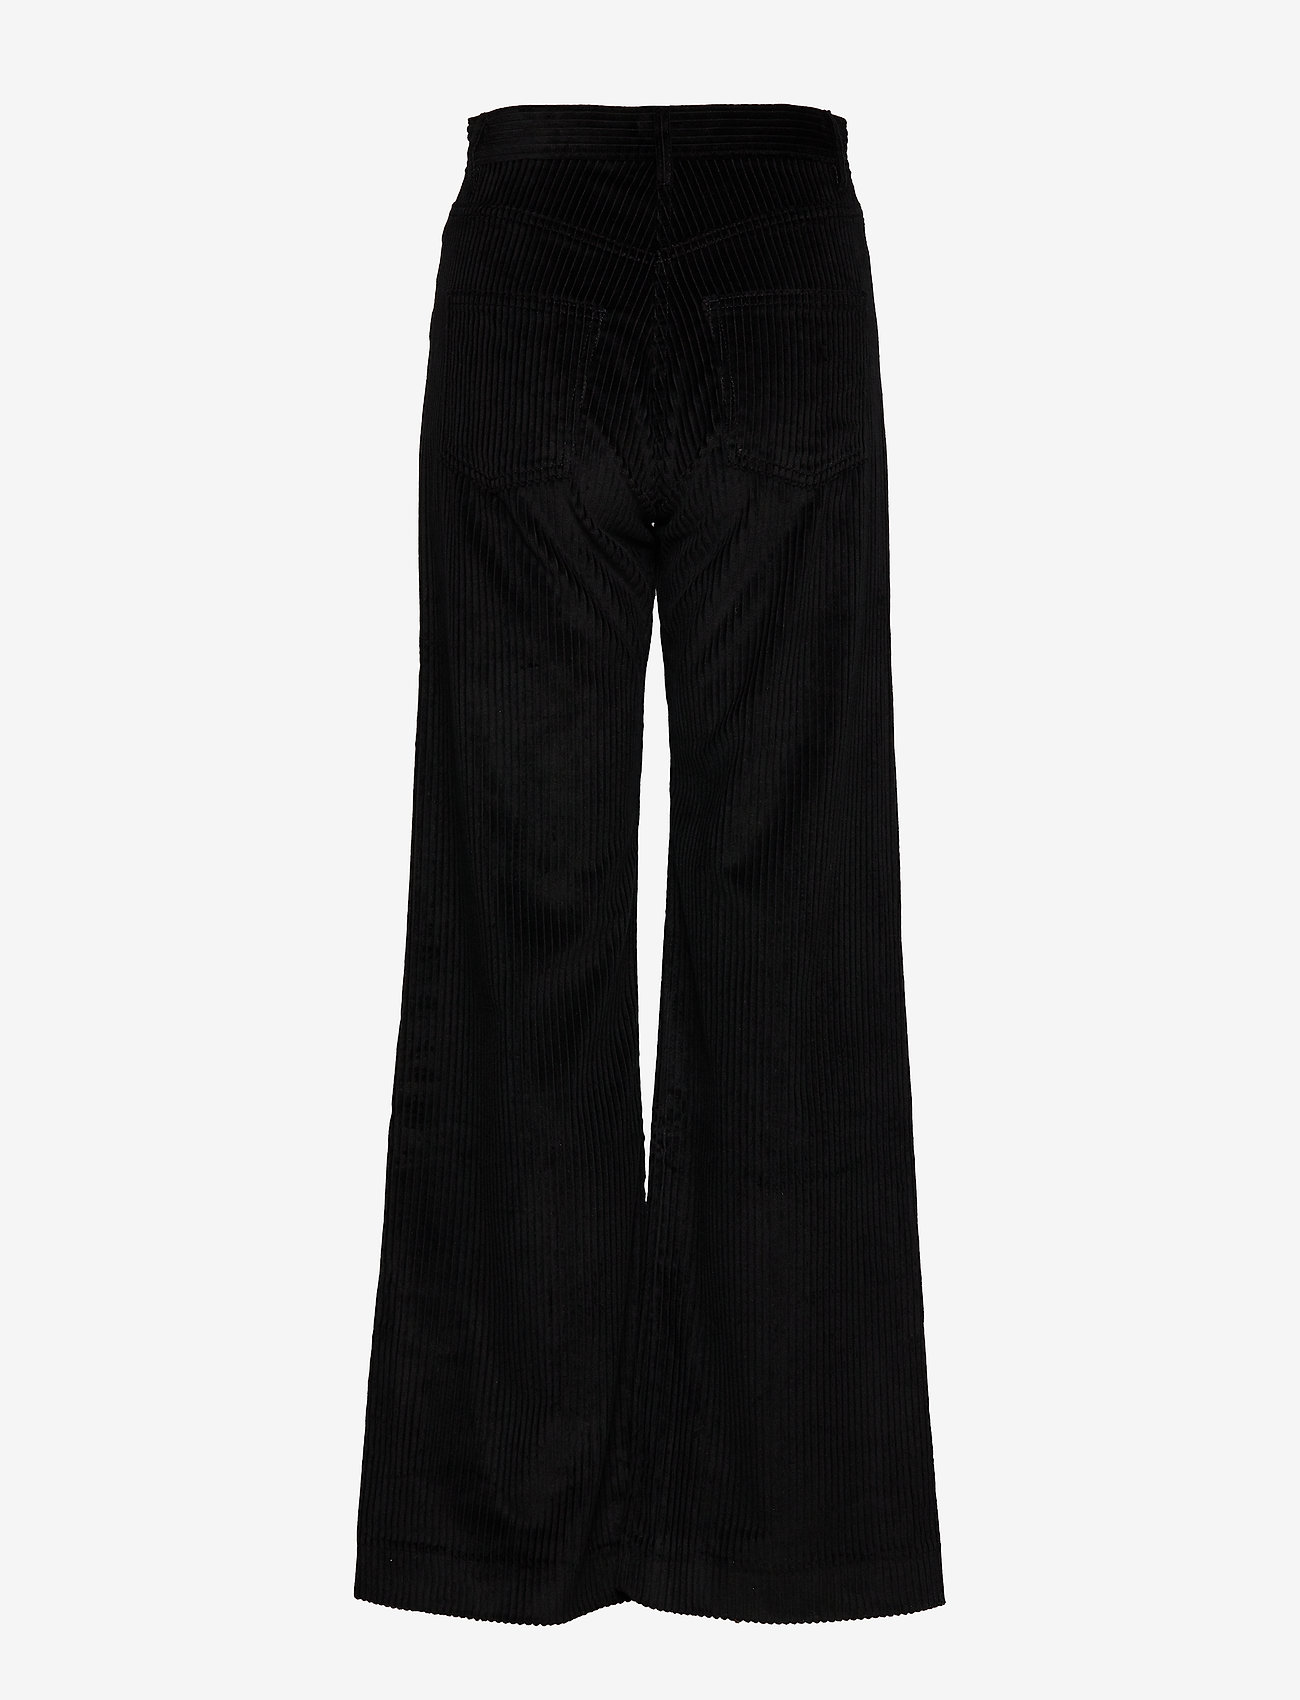 Whyred - RUTH - wide leg trousers - black - 1